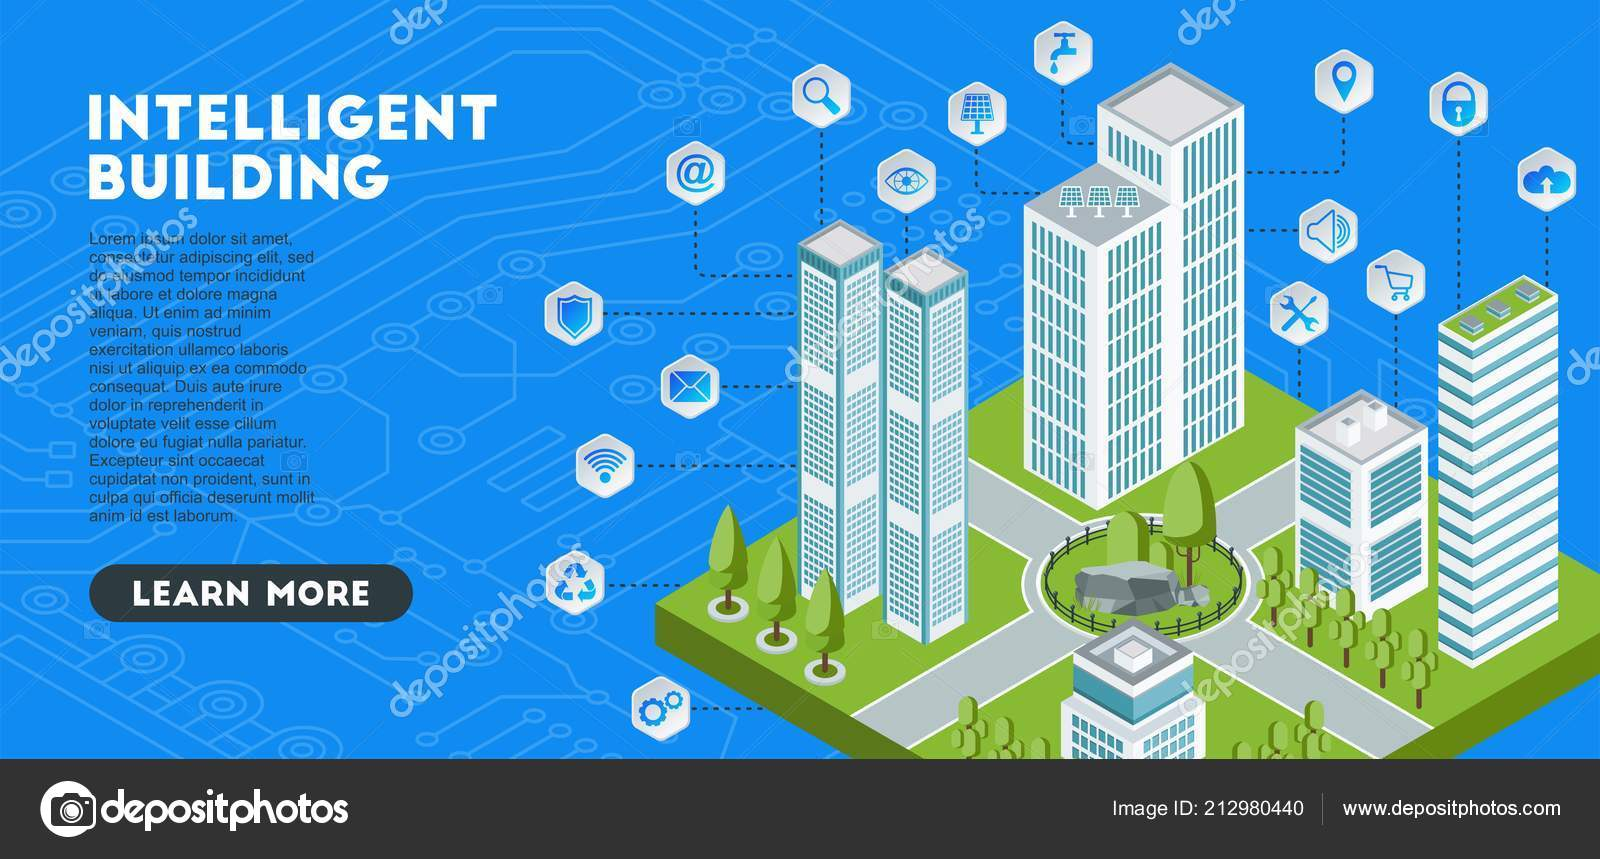 intelligent buildings How low-voltage electrical and communications devices are pairing with information technology infrastructure to create smart building networks.